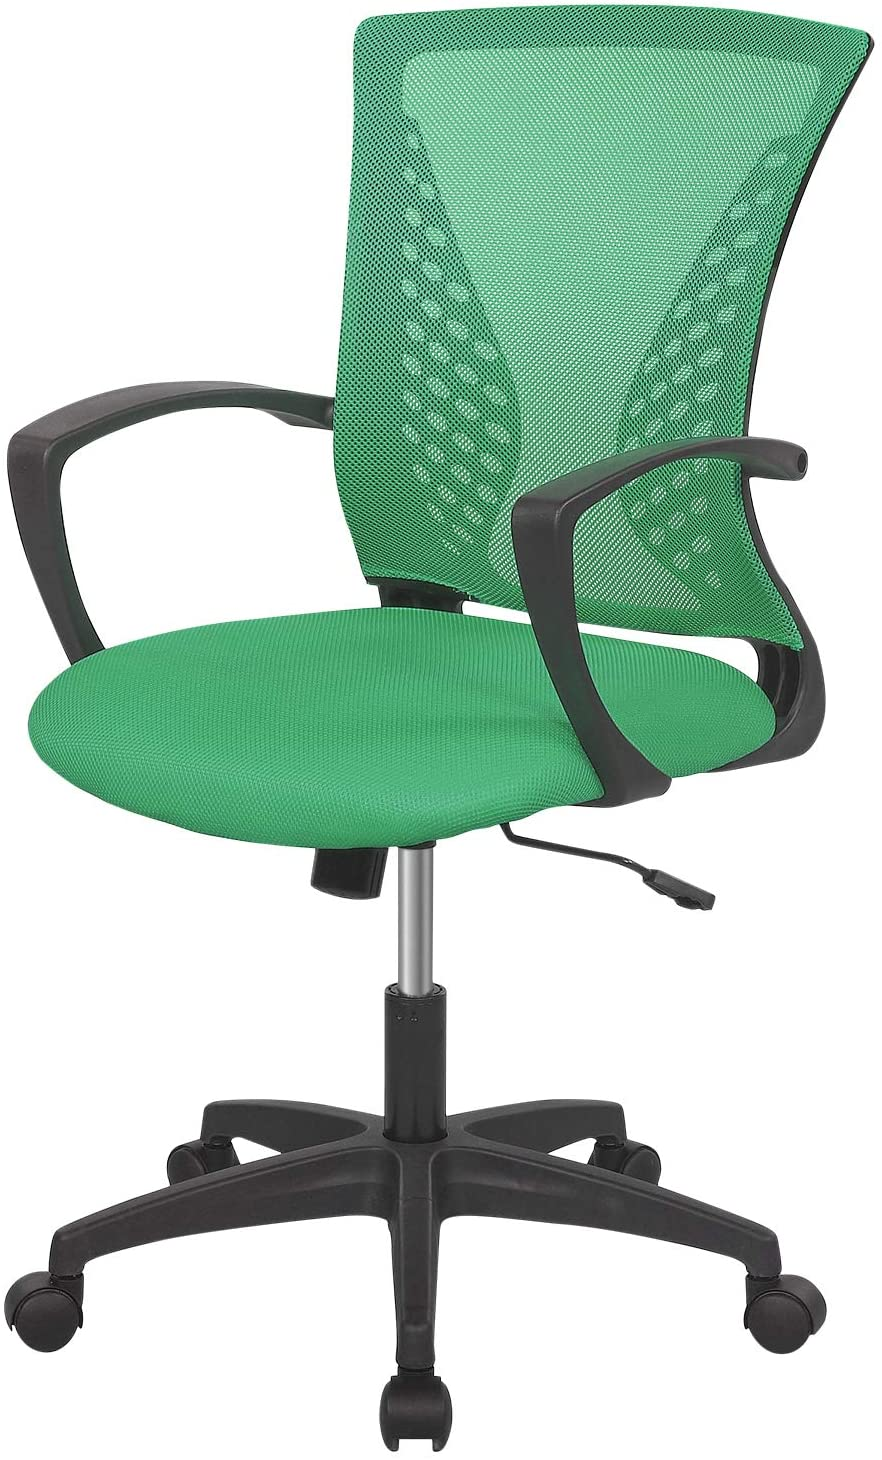 Home Office Chair Mid Back PC Swivel Lumbar Support Adjustable Desk Task Computer Ergonomic Comfortable Mesh Chair with Armrest (Green)